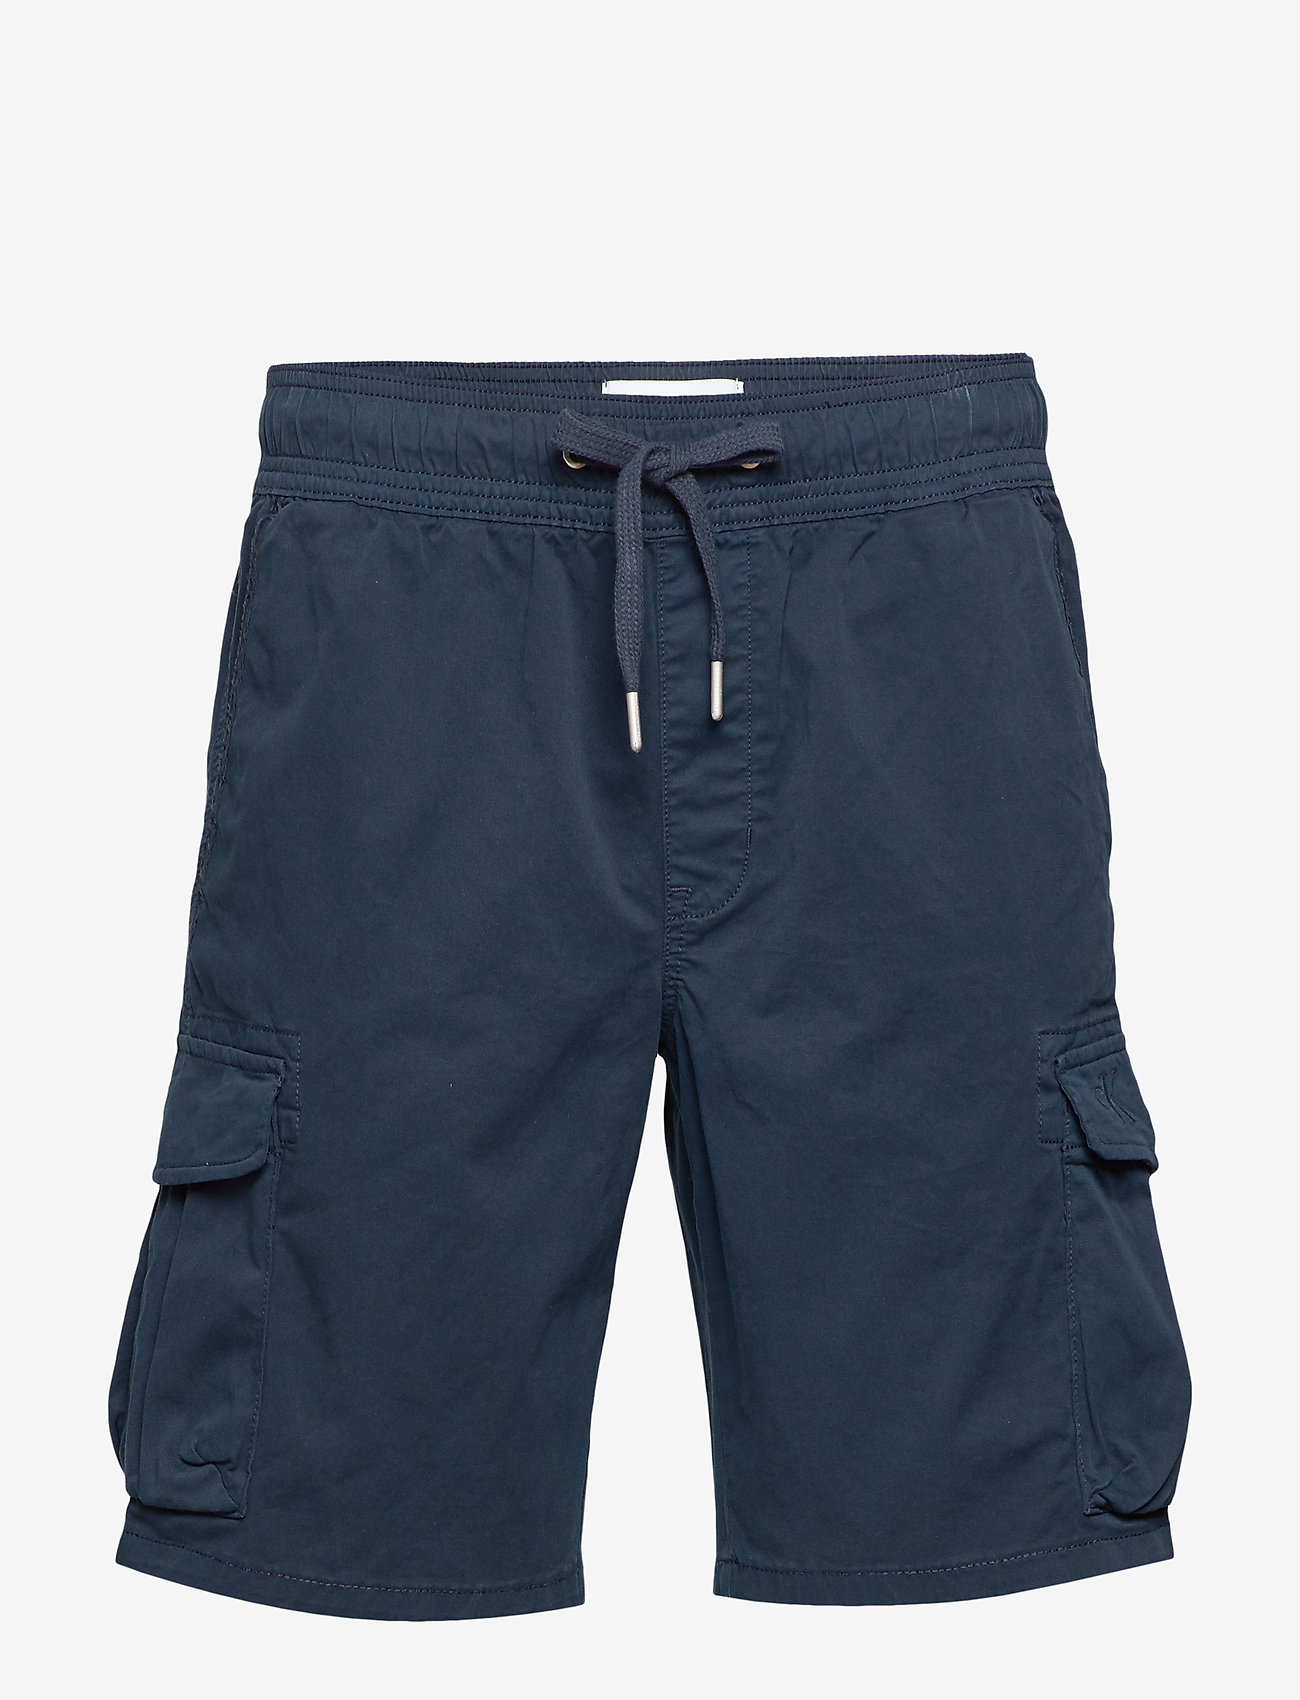 Calvin Klein Jeans - SIMPLE WASHED CARGO SHORT - cargo shorts - night sky - 0